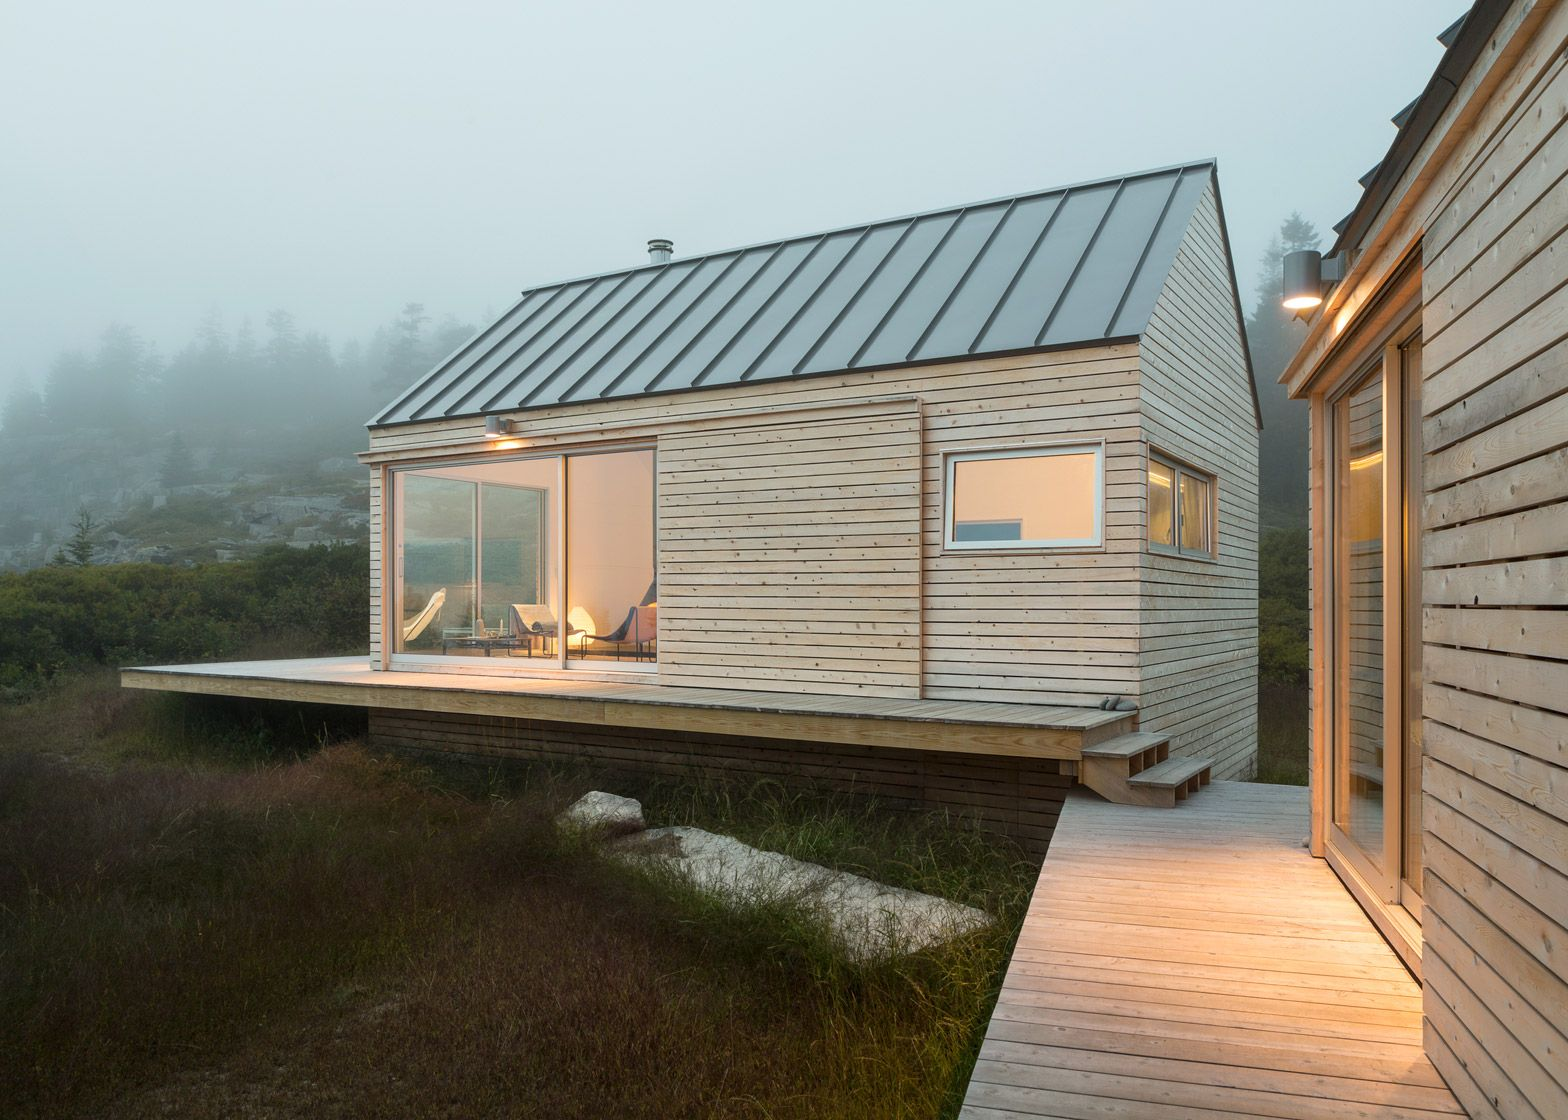 Trio of wooden cabins forms Little House